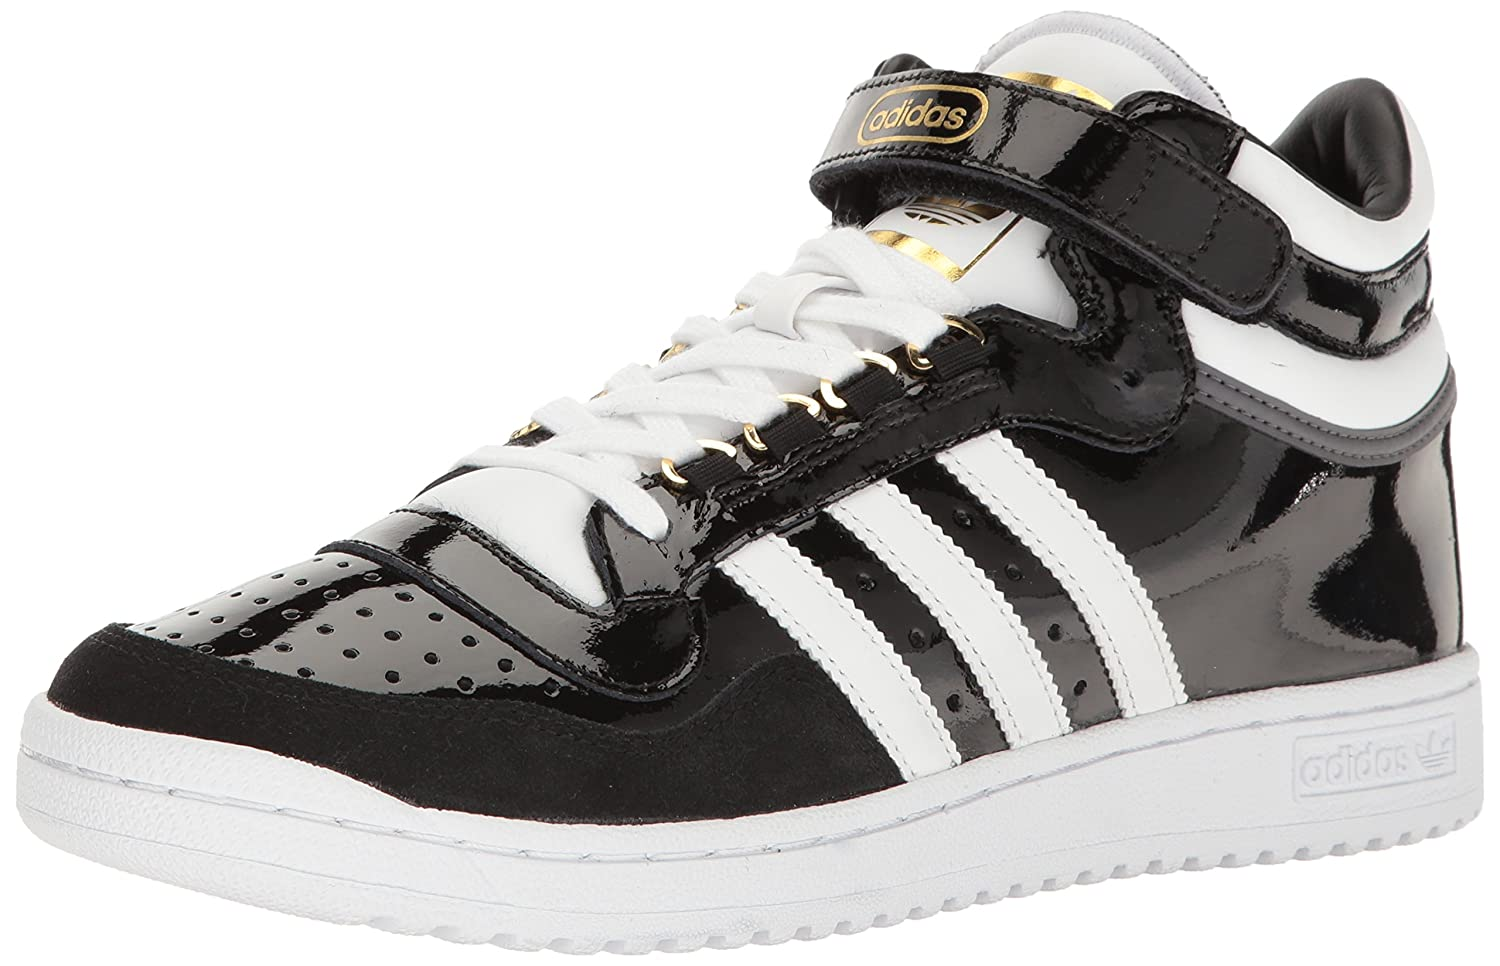 new arrivals a0d7d 0d3ea Amazon.com   adidas Originals Men s Concord Ii Mid Fashion Sneakers    Fashion Sneakers